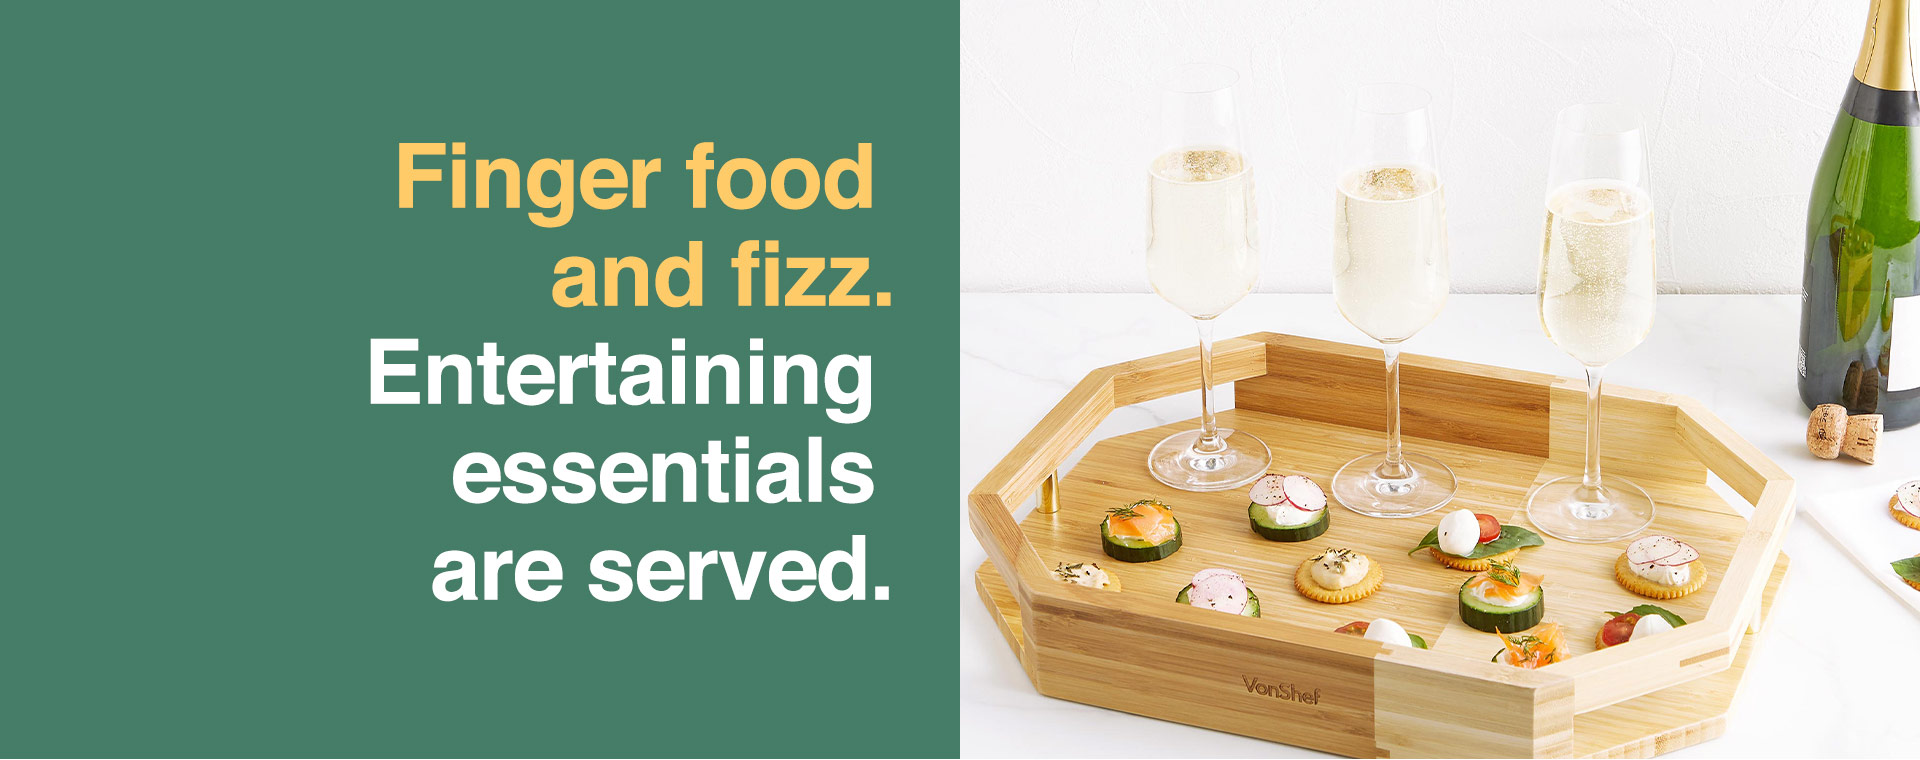 Finger food and fizz.